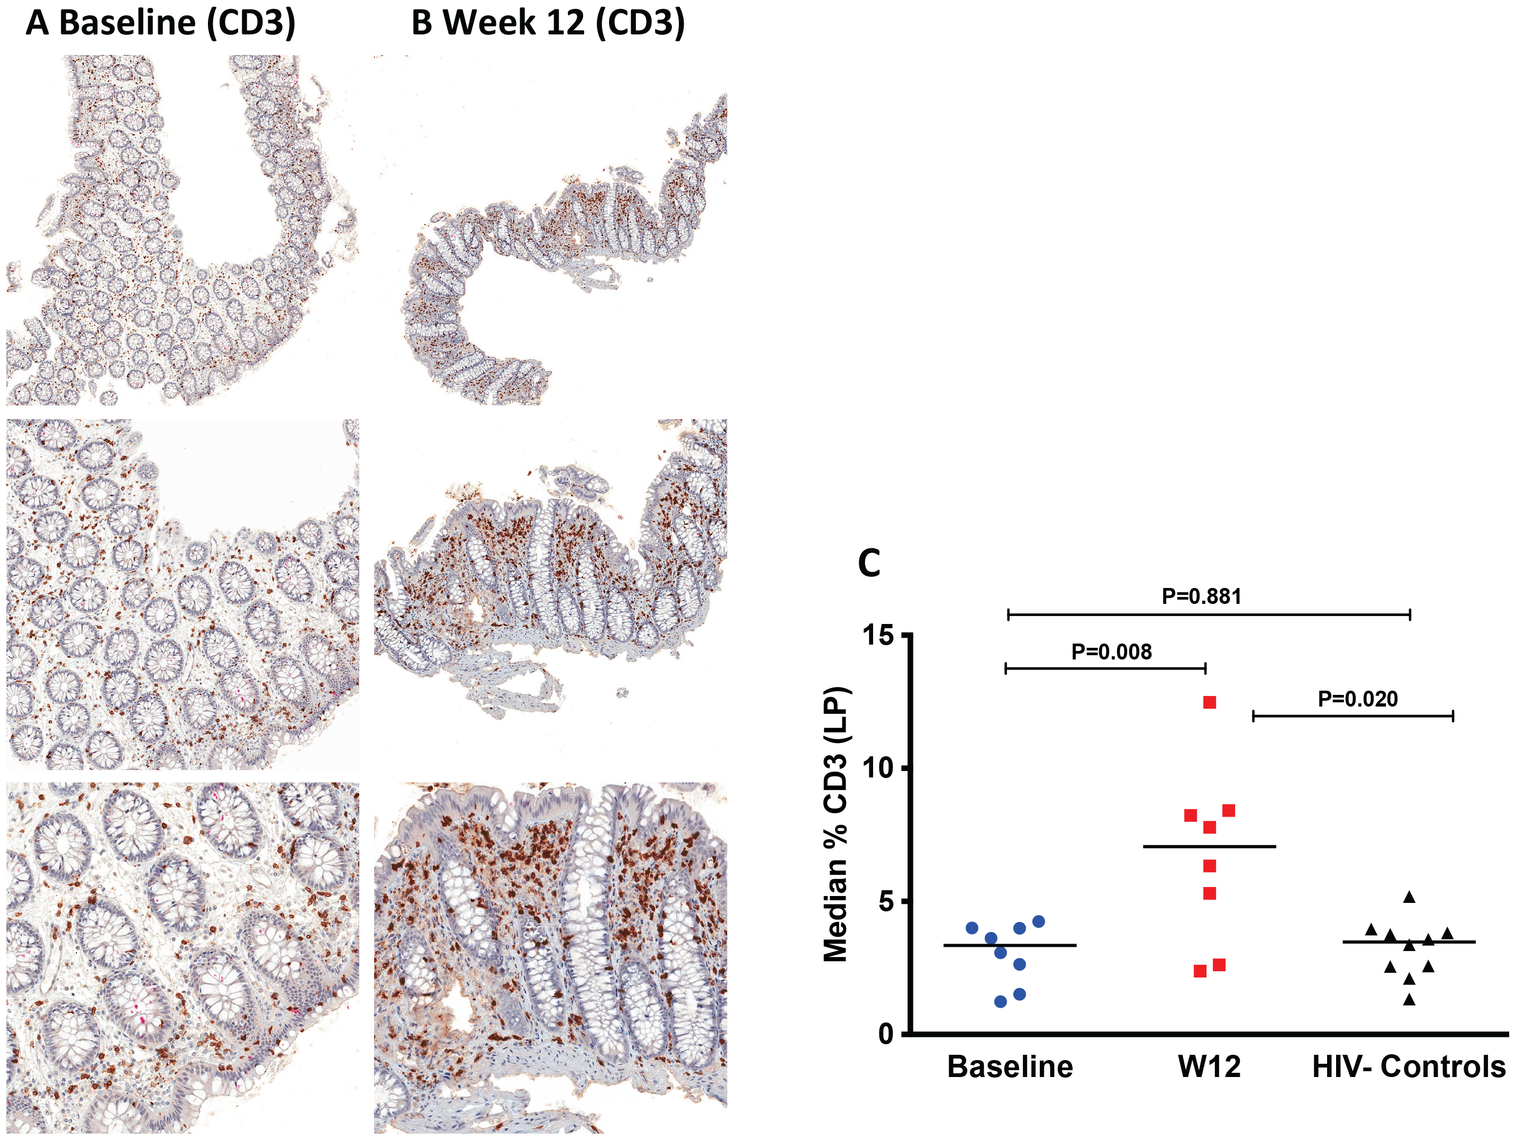 Increase of CD3<sup>+</sup> cells in the lamina propria (LP) by immunohistochemistry at week 12 after r-hIL-7 administration.